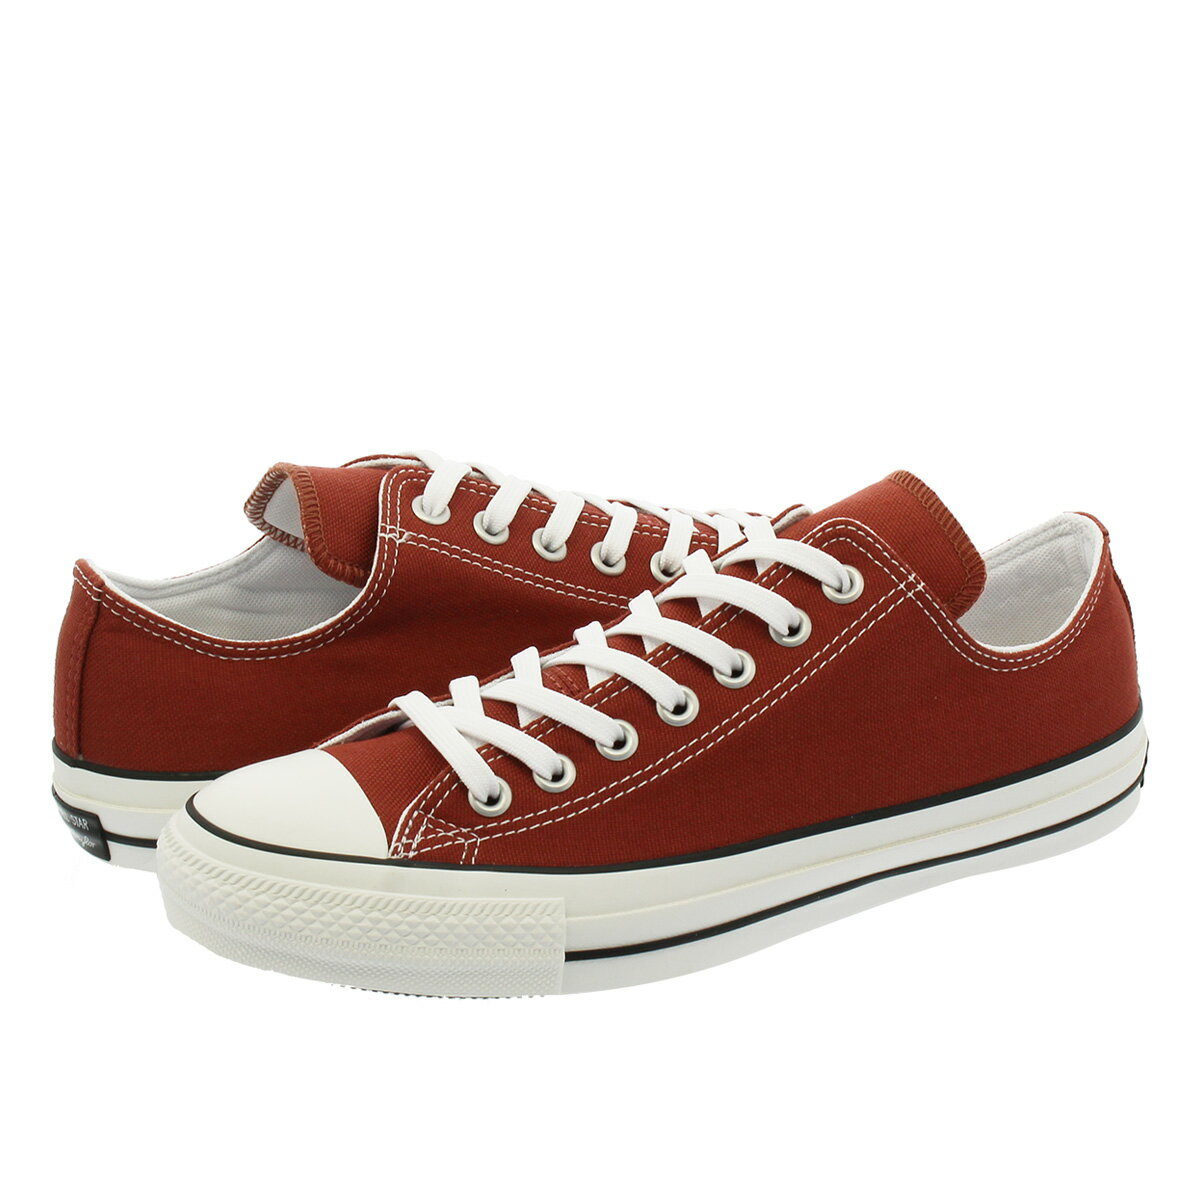 CONVERSE ALL STAR 100 COLORS OX 【100周年】 【100th ANNIVERSARY】 コンバース オールスター 100 カラーズ OX BRICK RED 3286295